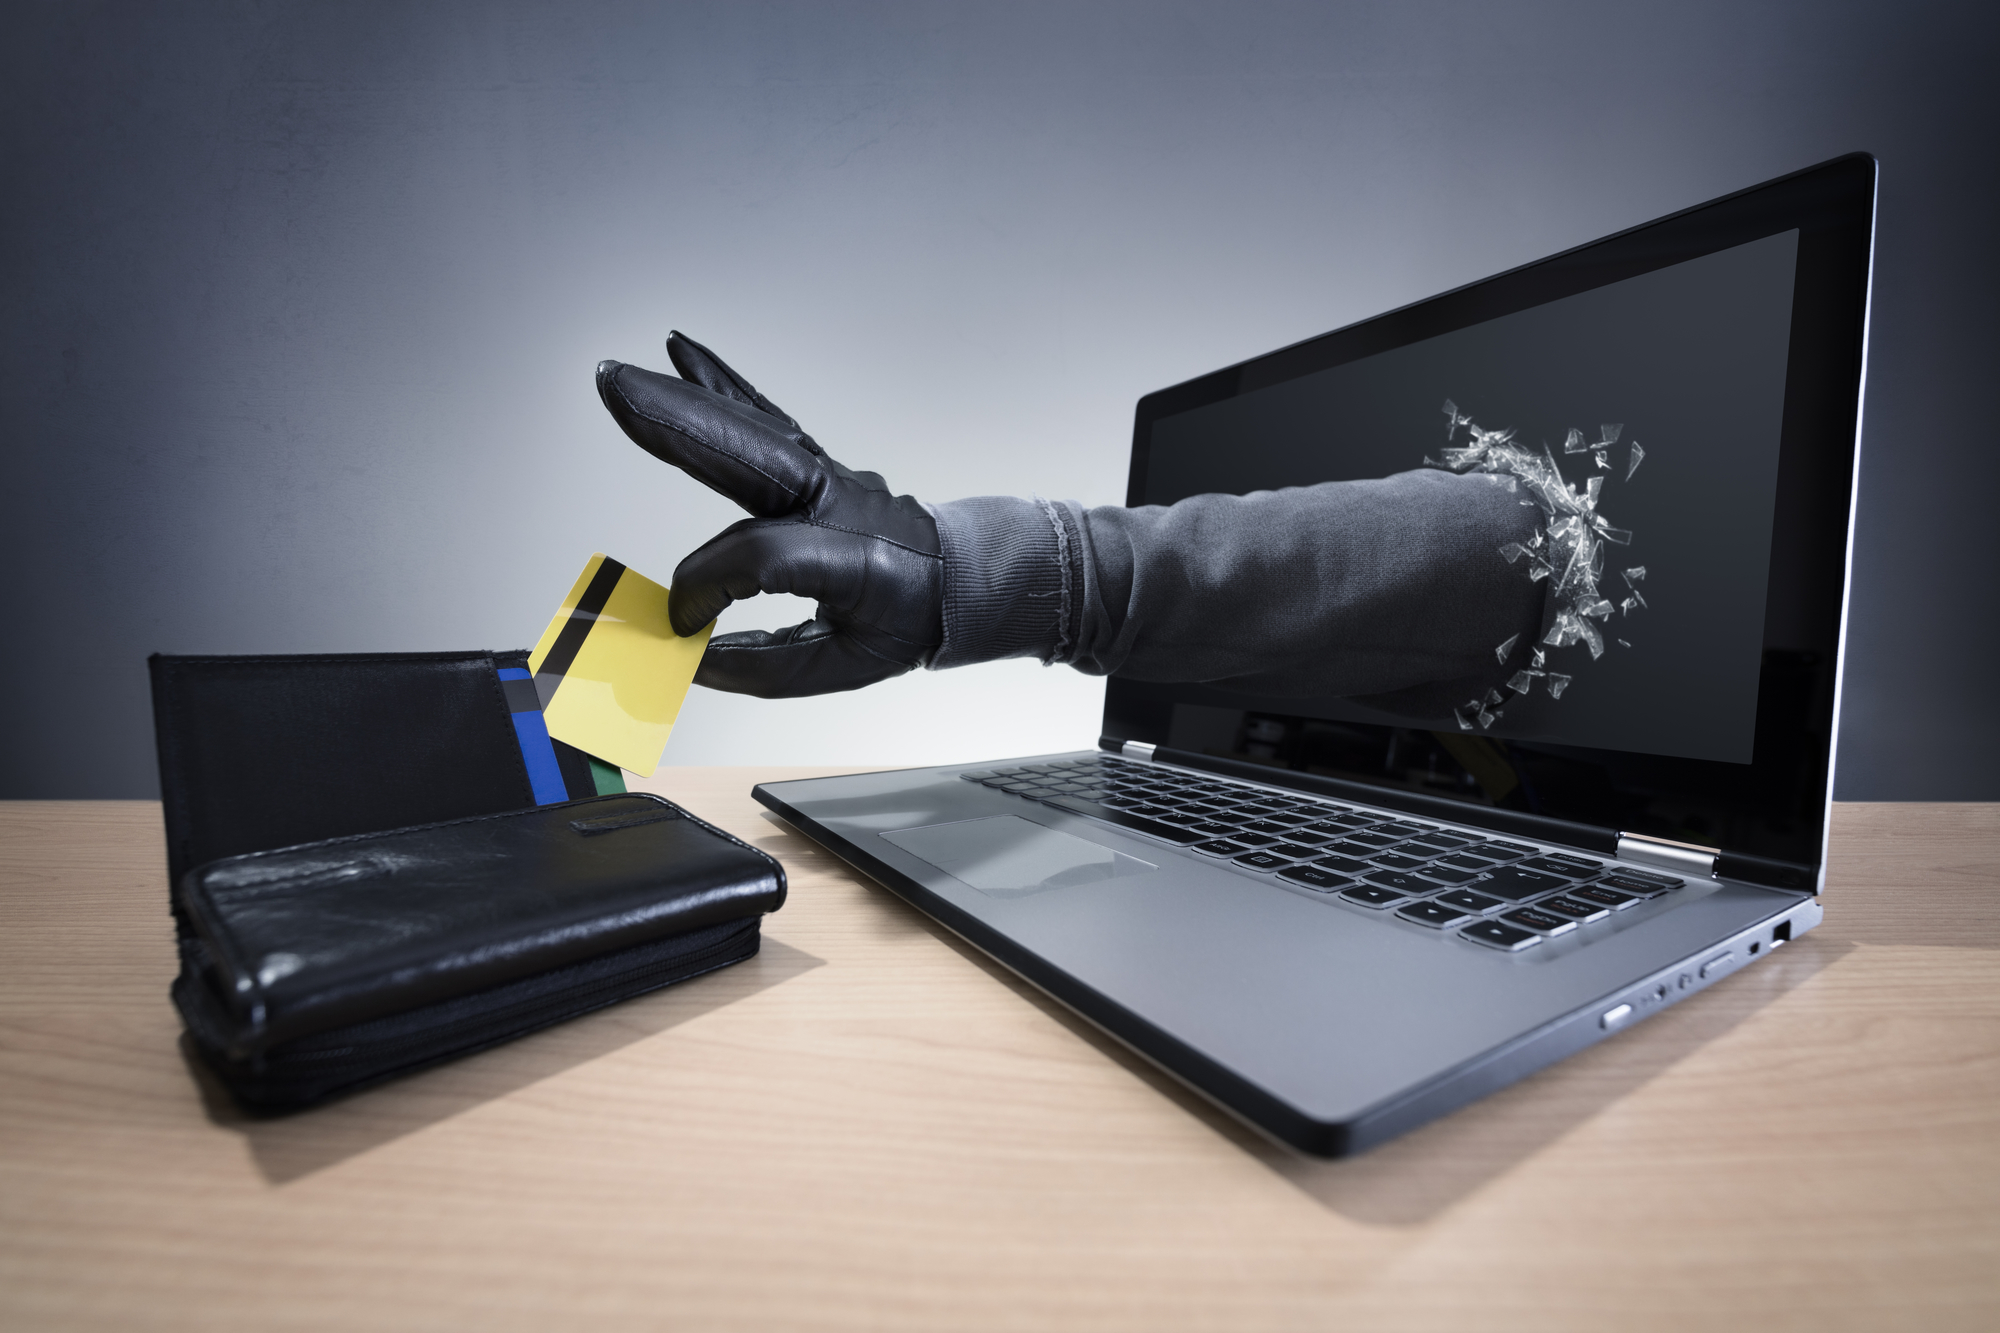 essay on computer crime hacking Most typical cyber crimes introduction cyber crime refers to any criminal endeavor that involves computers and computer networks cyber crime involving compromisation of computer networks is commonly referred to as hacking.